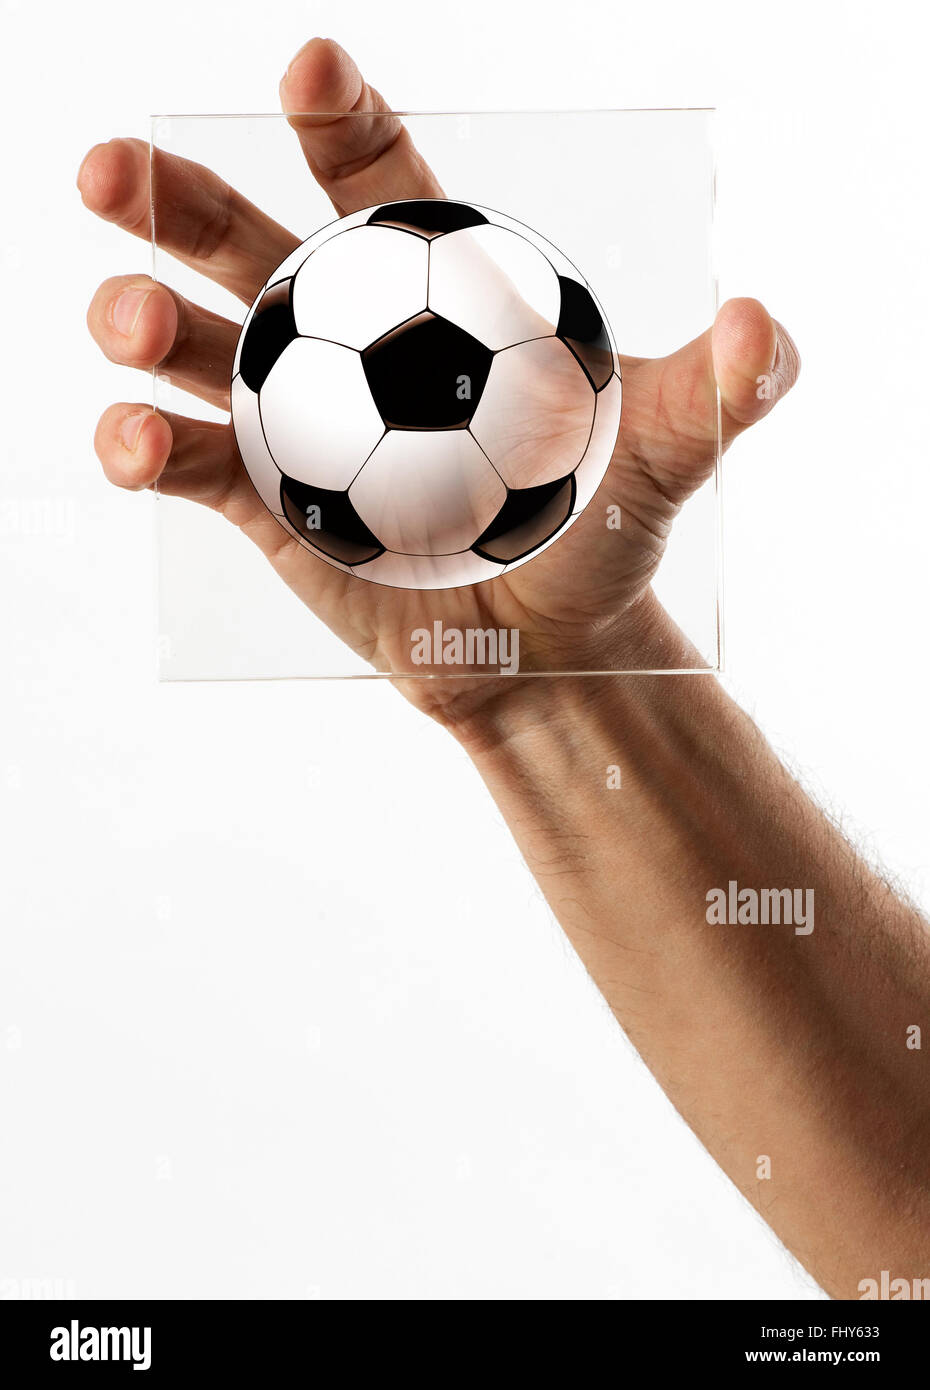 Single human hand holding a square piece of glass with a black and white soccer ball - Stock Image